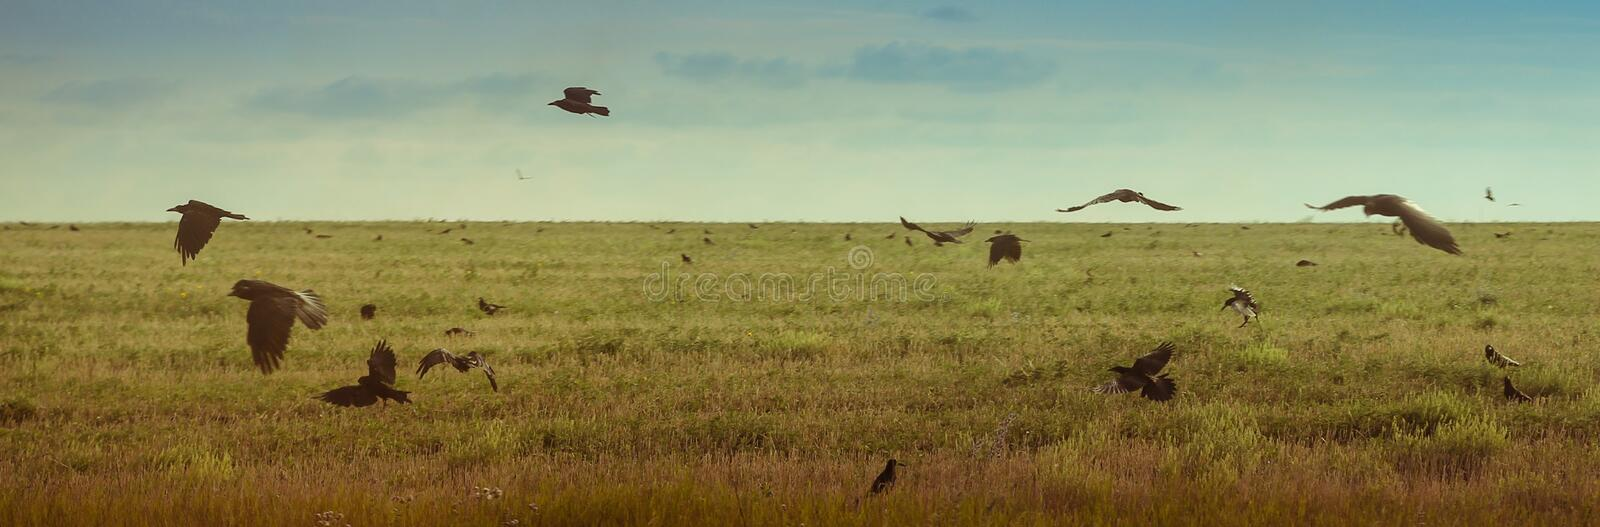 Landscape with flying birds at sky. Landscape with flying birds at sunny sky on green field at summertime; brightful and warm stock photography